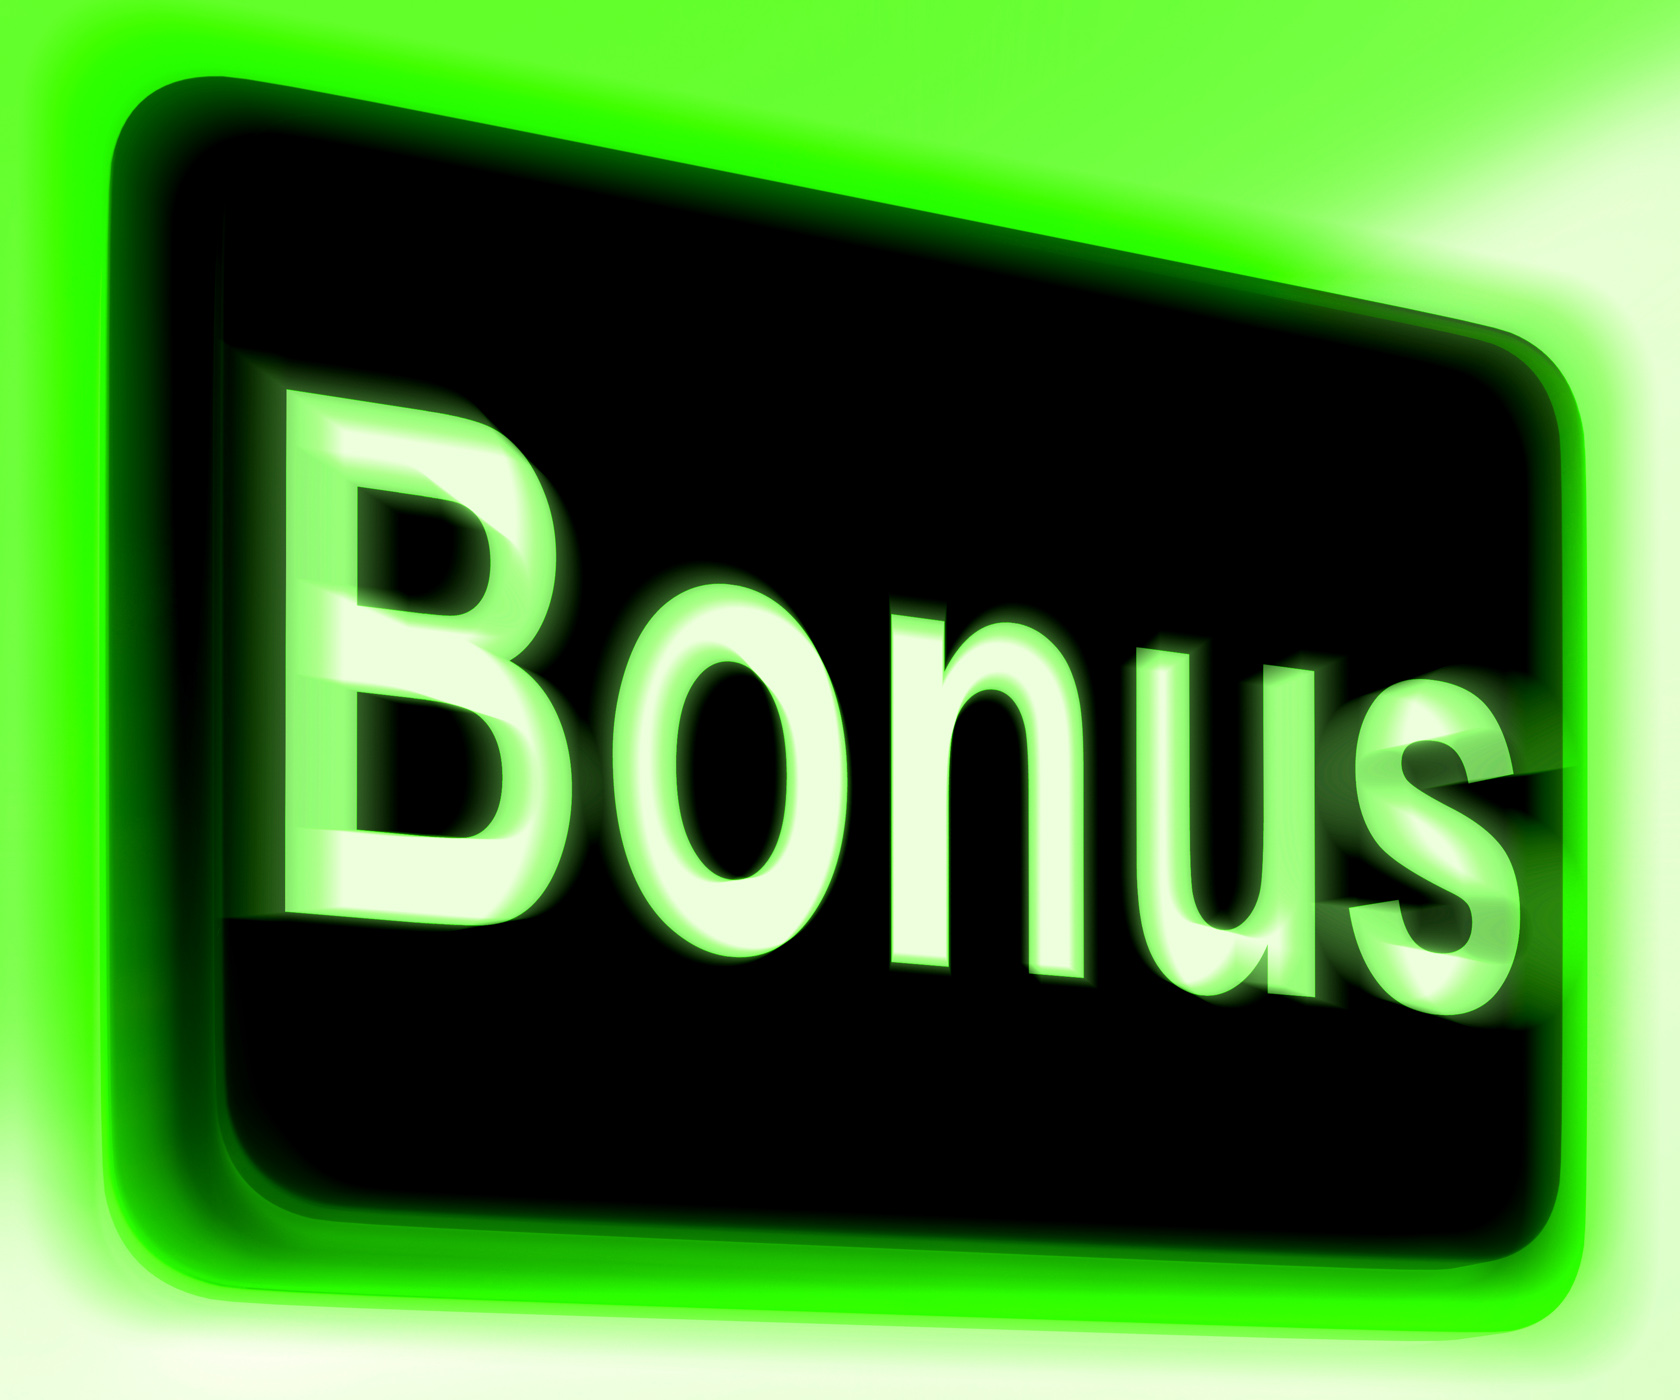 Bonus sign shows extra gift or gratuity online photo